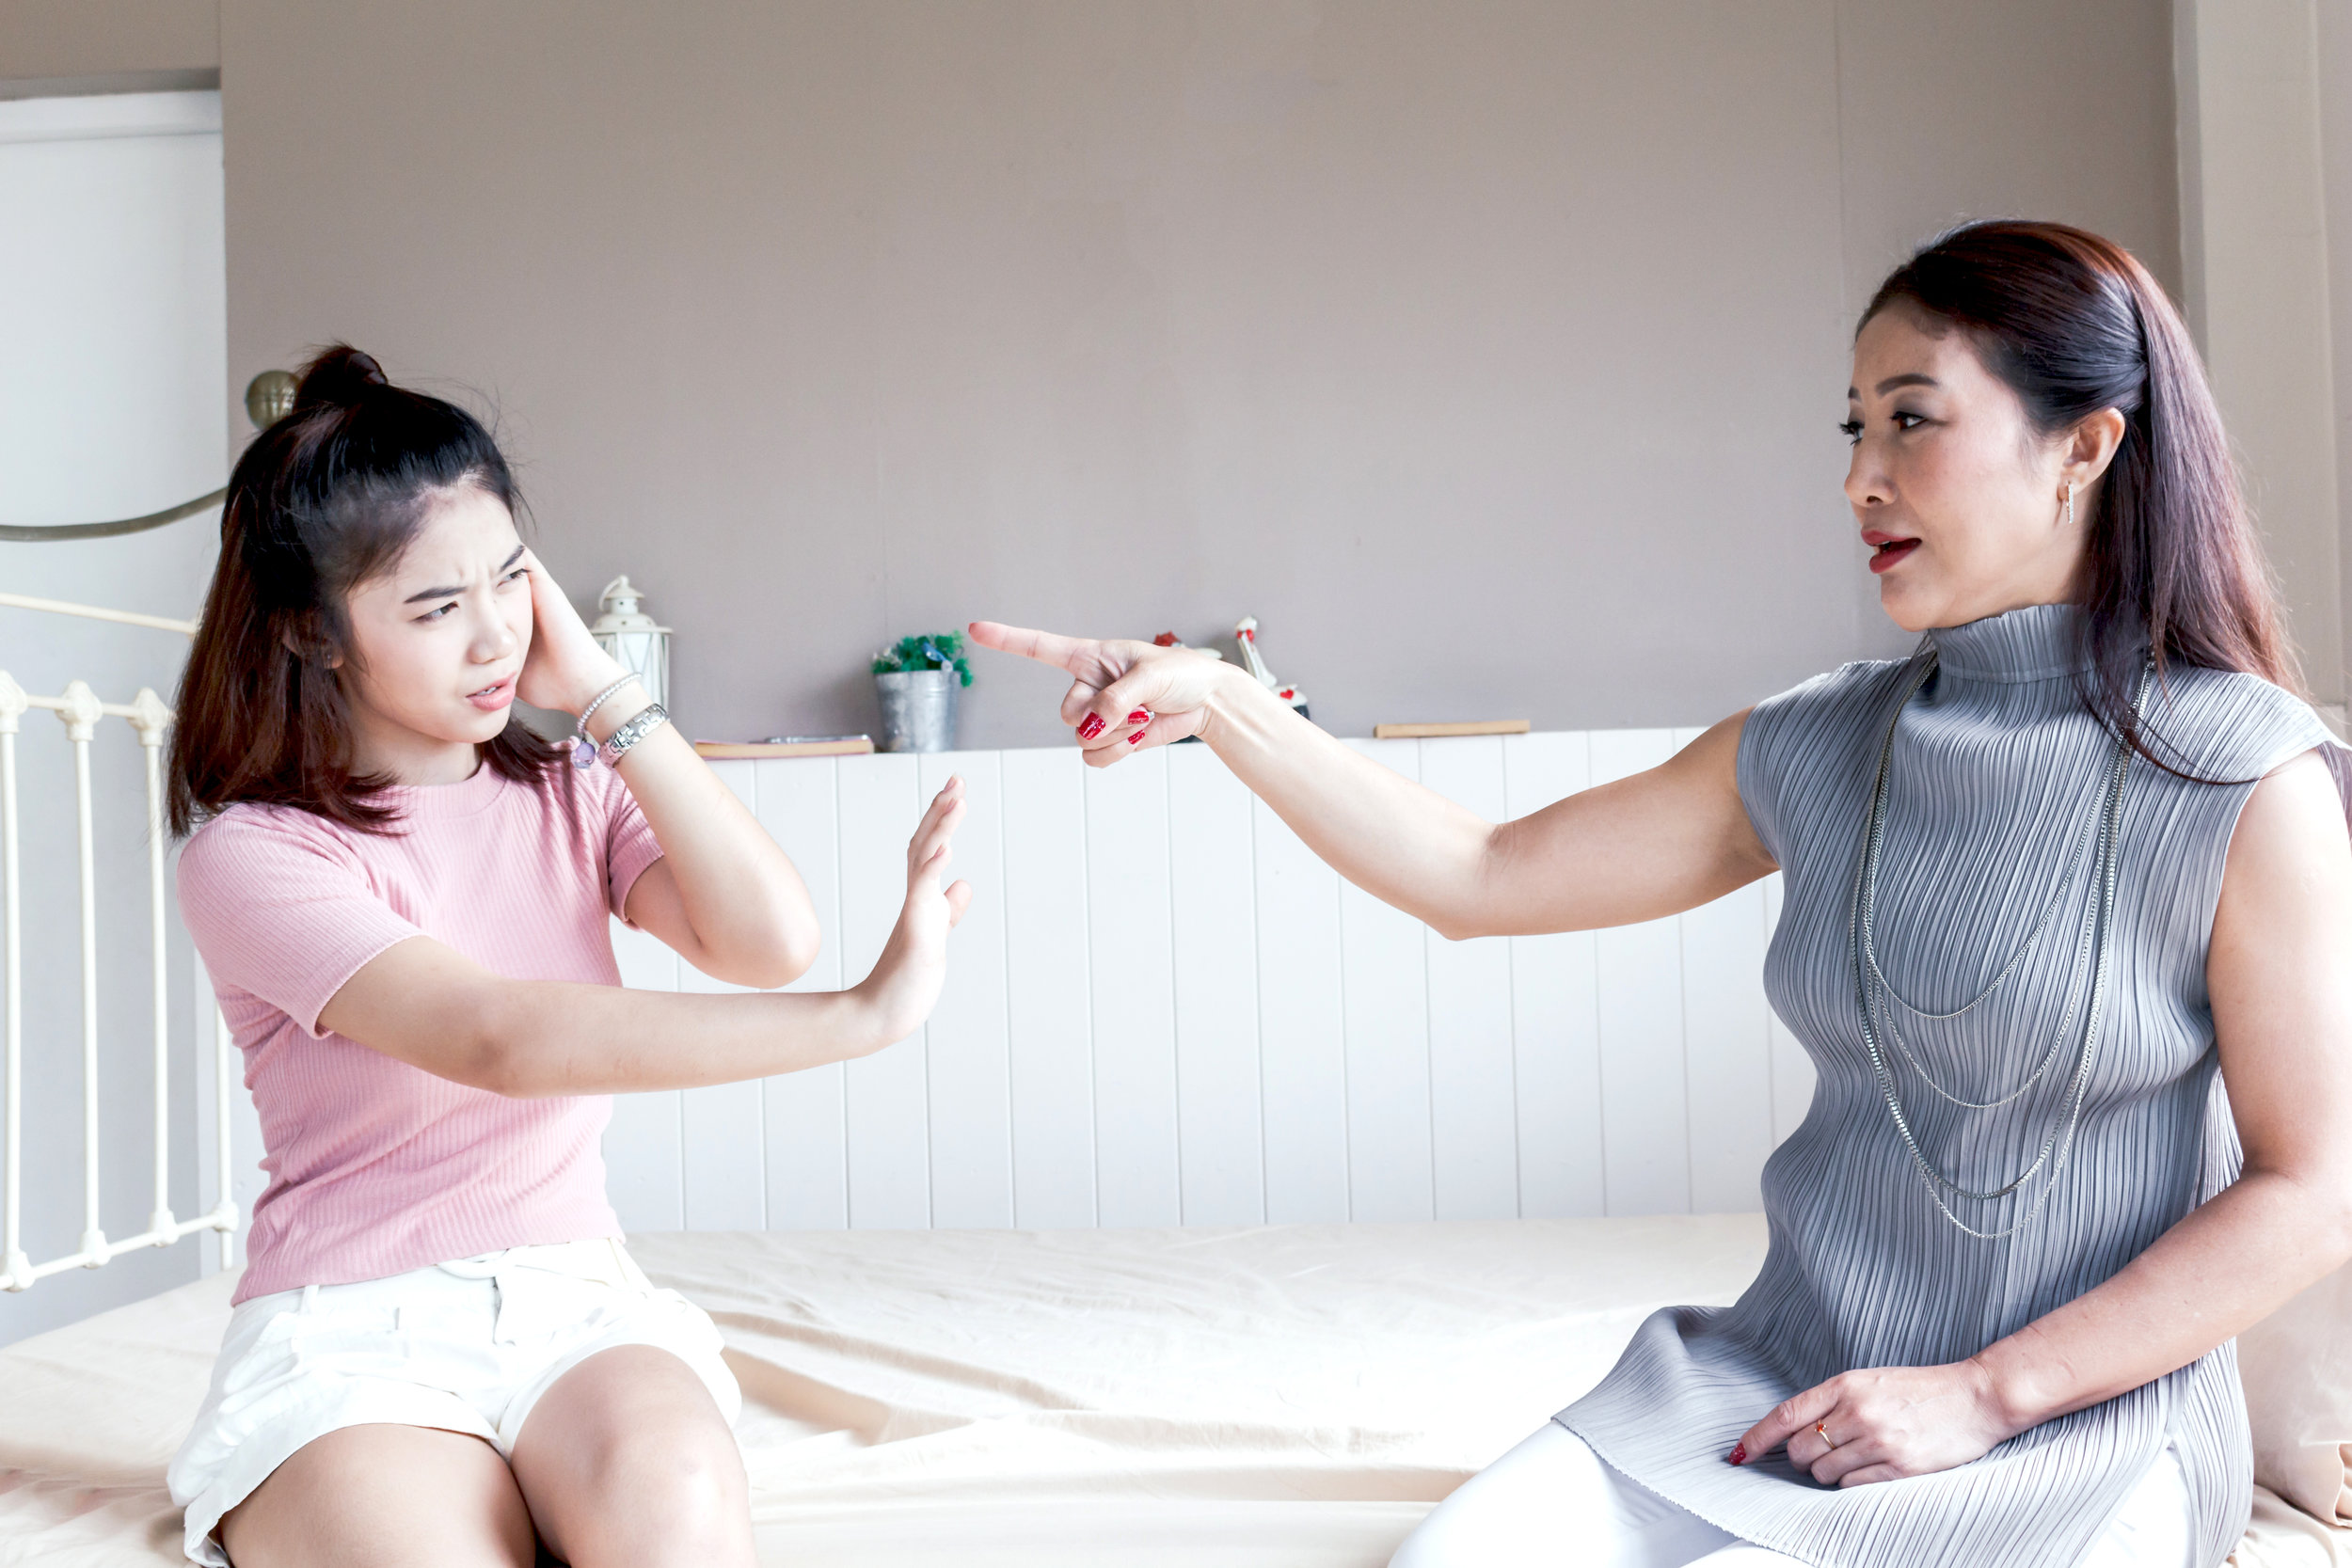 Avoid finger pointing or fighting about money if possible. You may be able to use this moment as a learning experience.